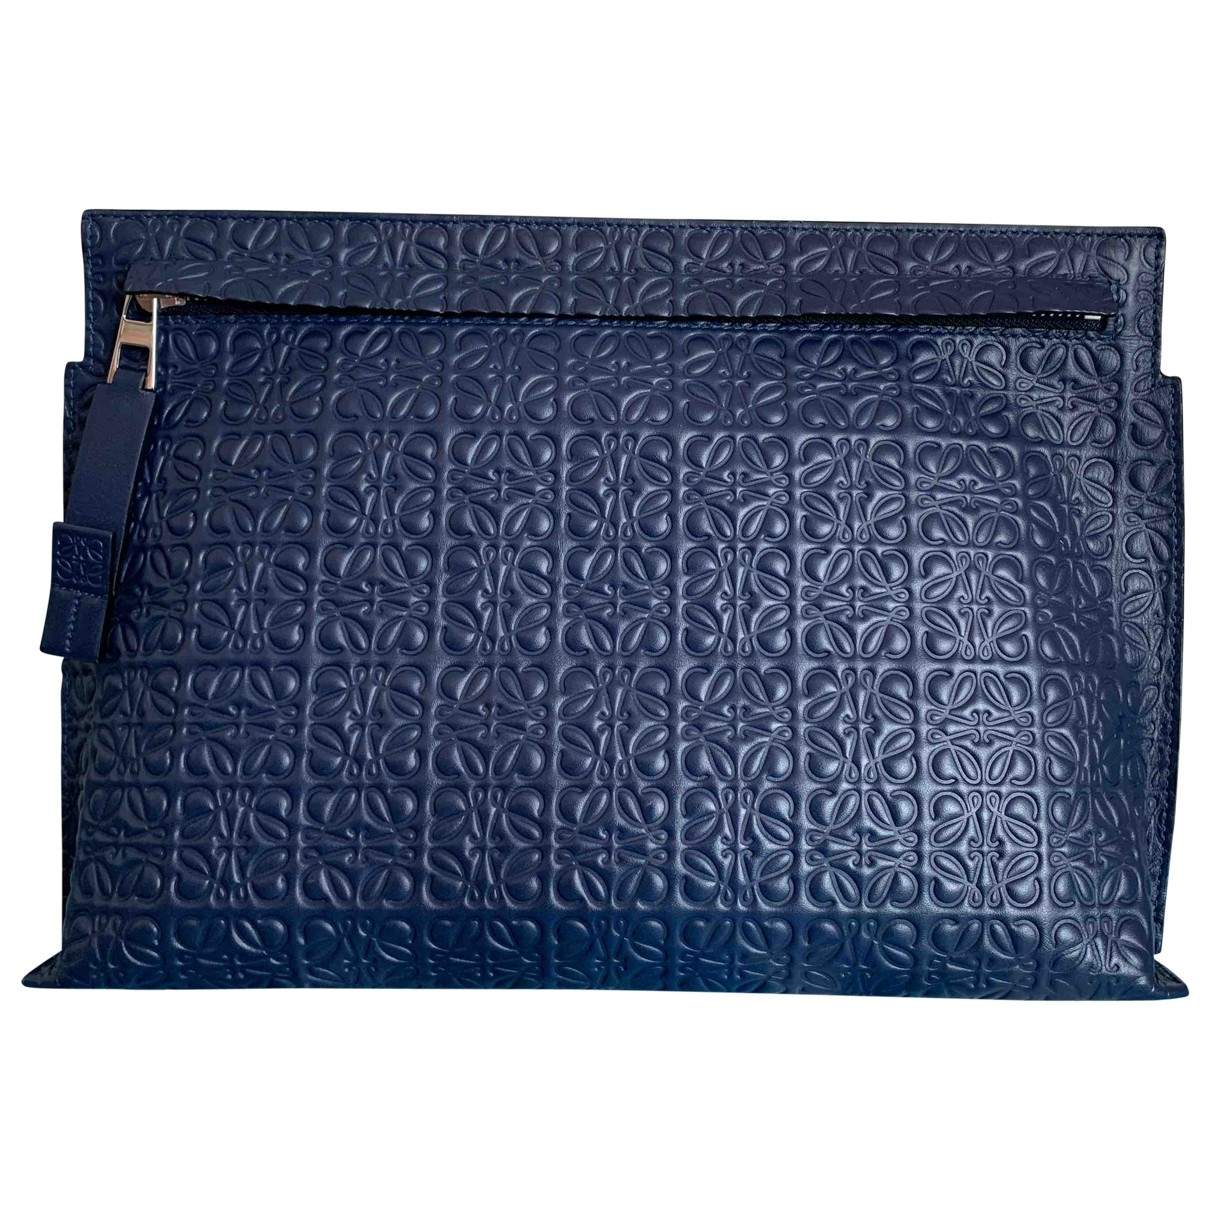 Loewe T Pouch Repeat Blue Leather Small bag, wallet & cases for Men \N